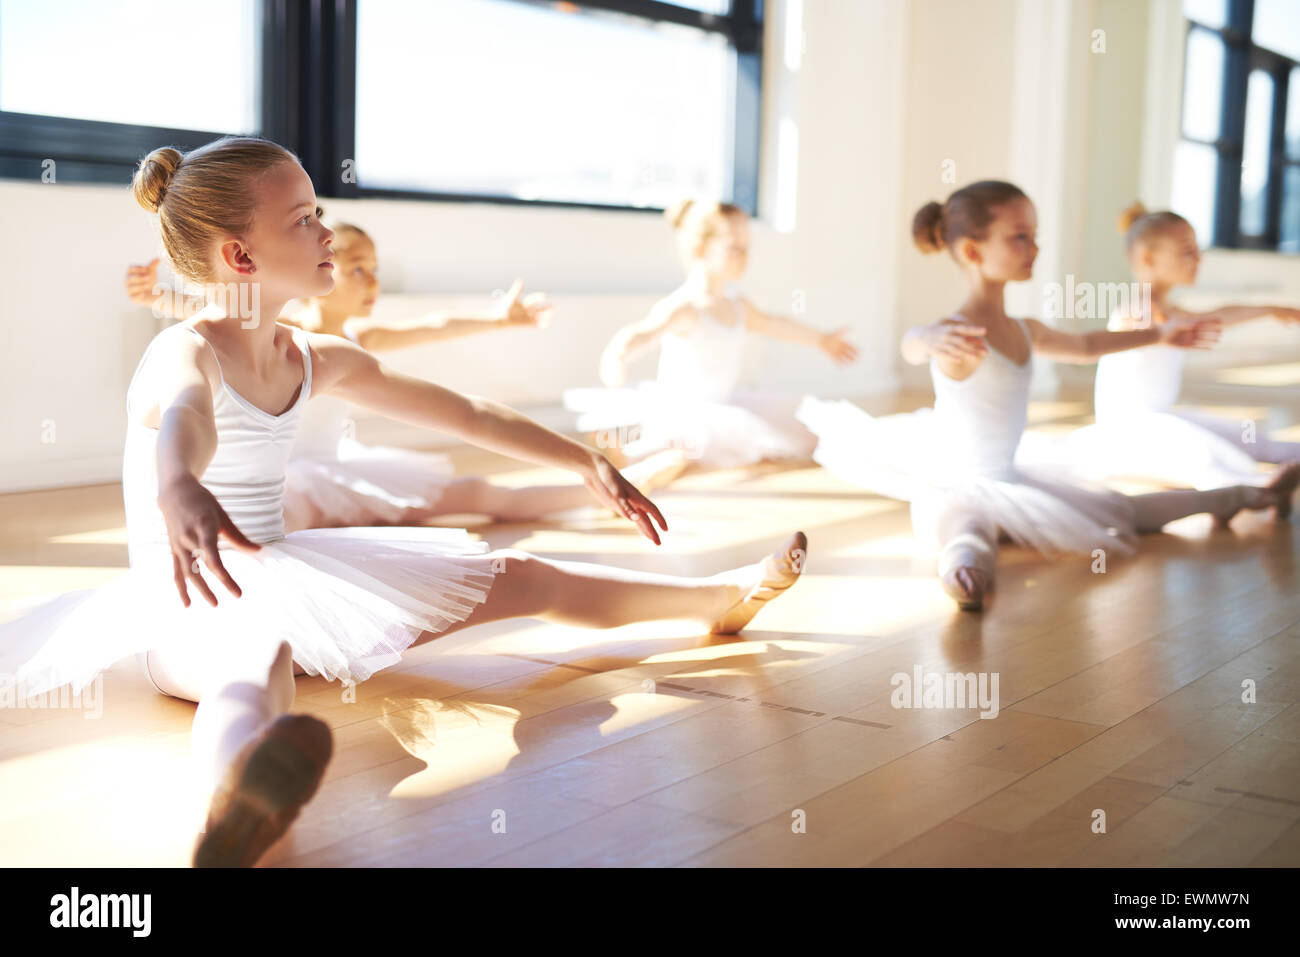 Pretty Young Girls, Wearing White Tutus, Sitting on the Floor at the Studio While Having a Training for Ballet Dance. - Stock Image